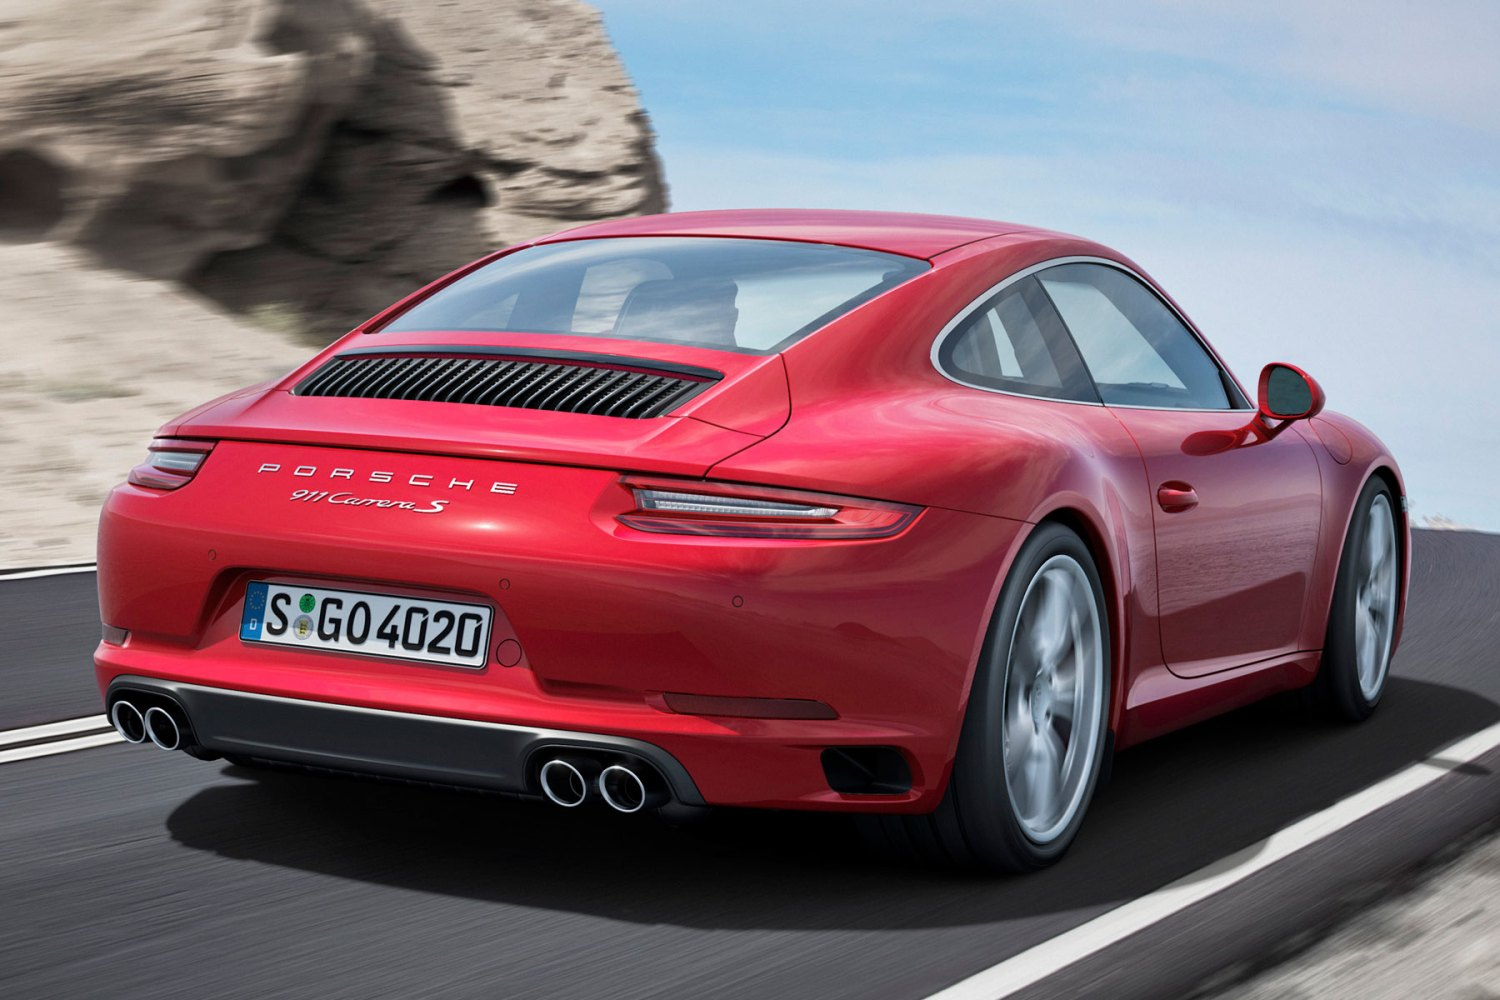 Blog: Can a turbocharged Porsche 911 Carrera S be fun… driven slowly?